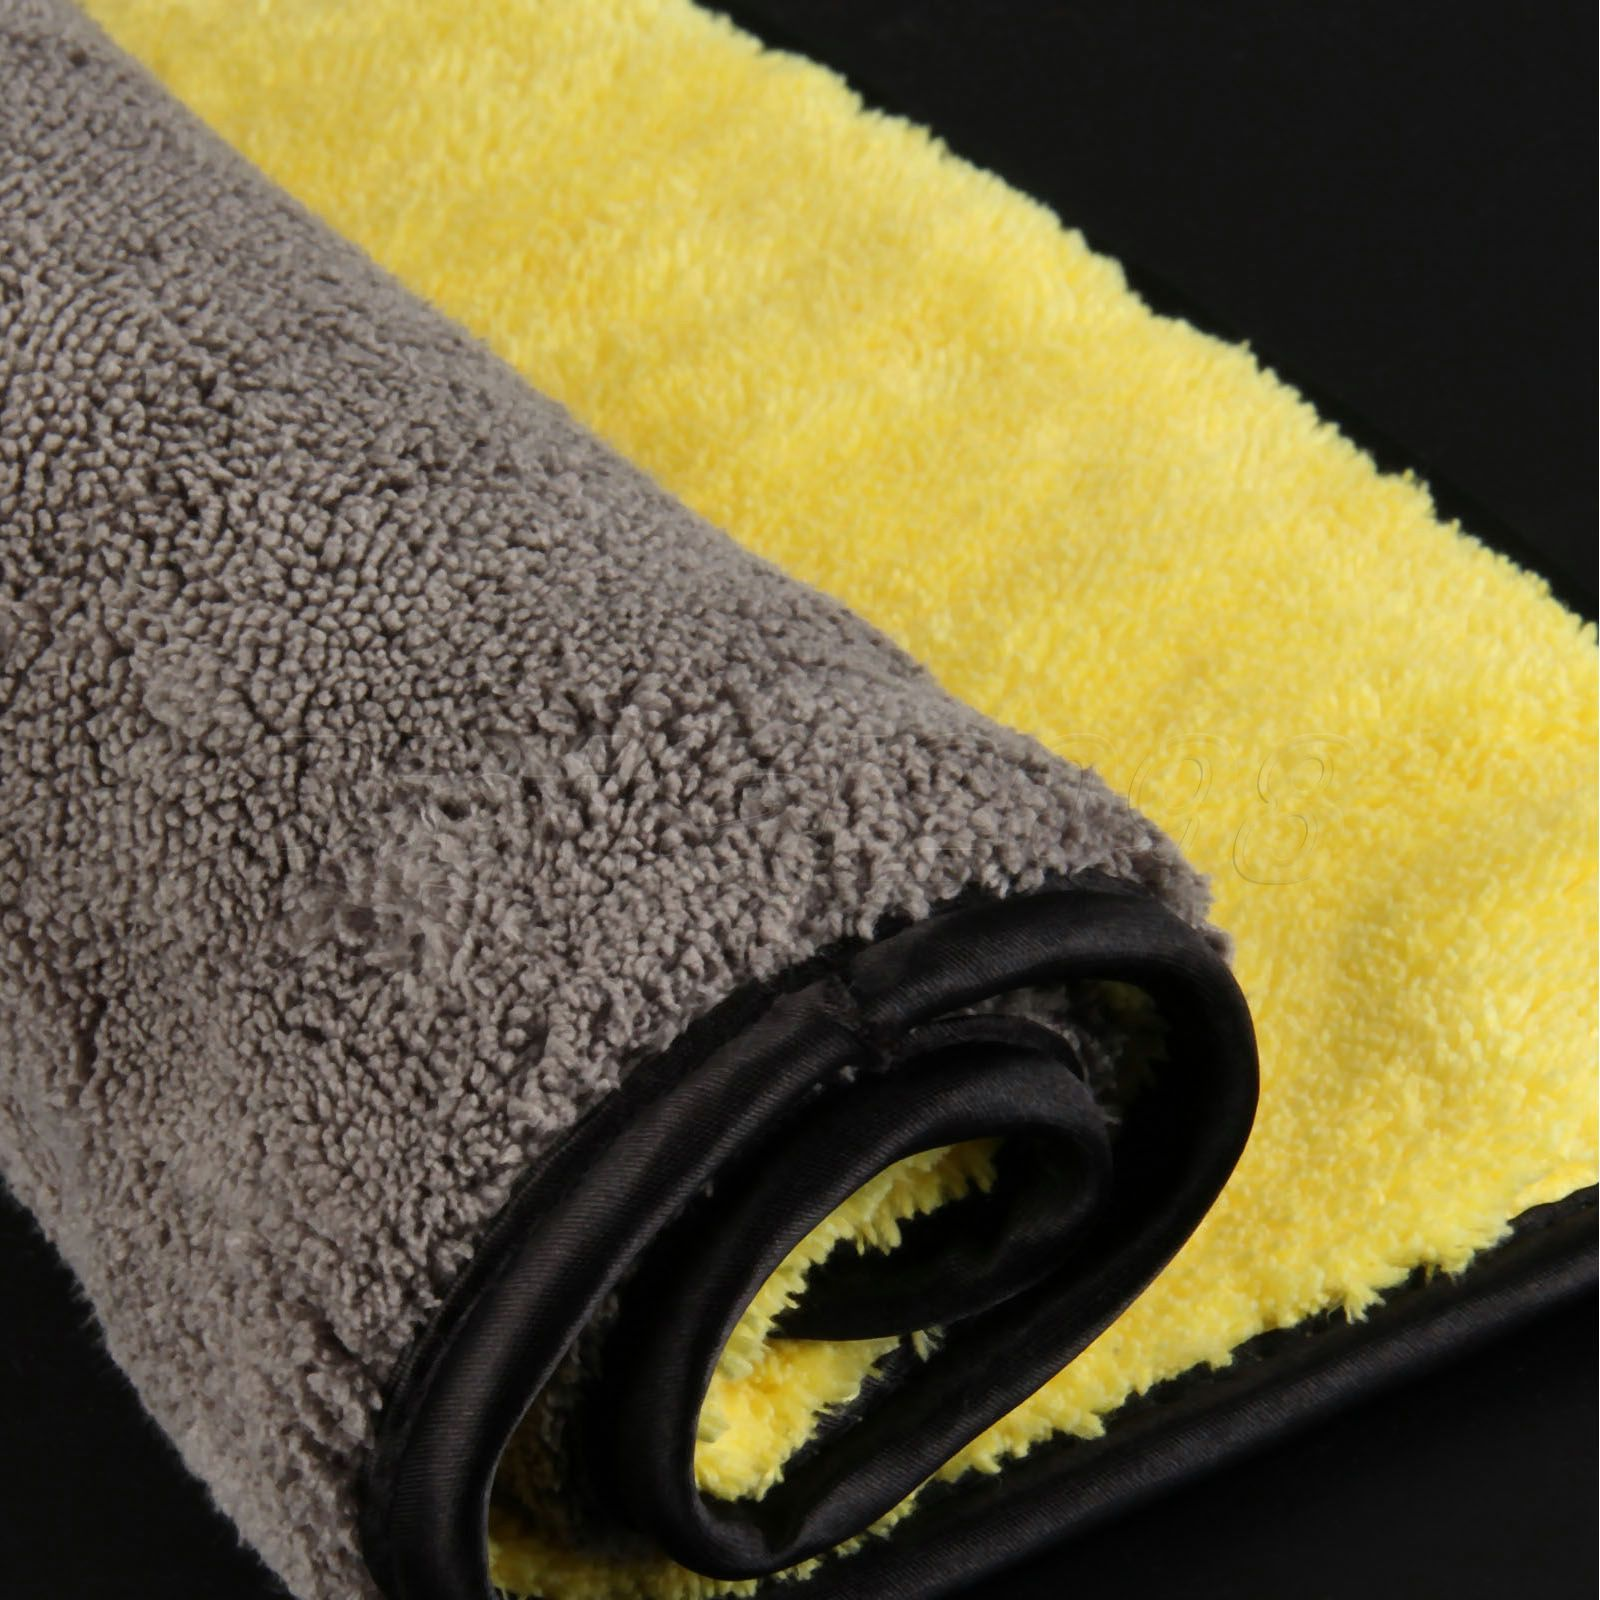 Image 2 - Yetaha 92*56cm Car Waxing Cloth Wash Microfiber Towel Car Cleaning Care Drying Detailing Polishing-in Sponges, Cloths & Brushes from Automobiles & Motorcycles